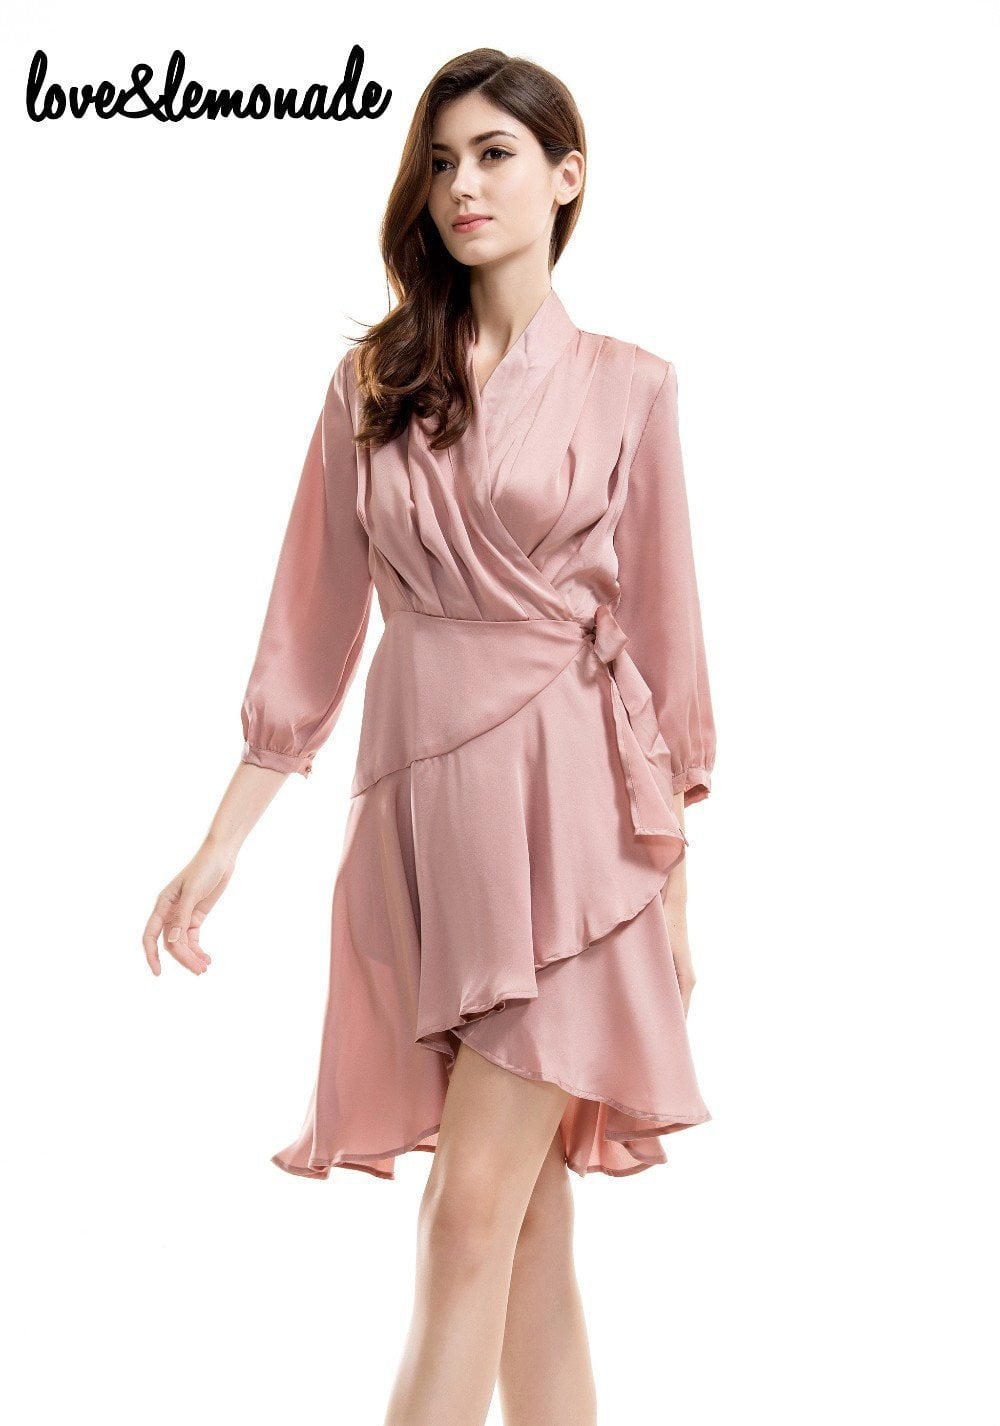 Nude Flash Fabric Sleeve V-Neck Party Dress-Dress-SheSimplyShops